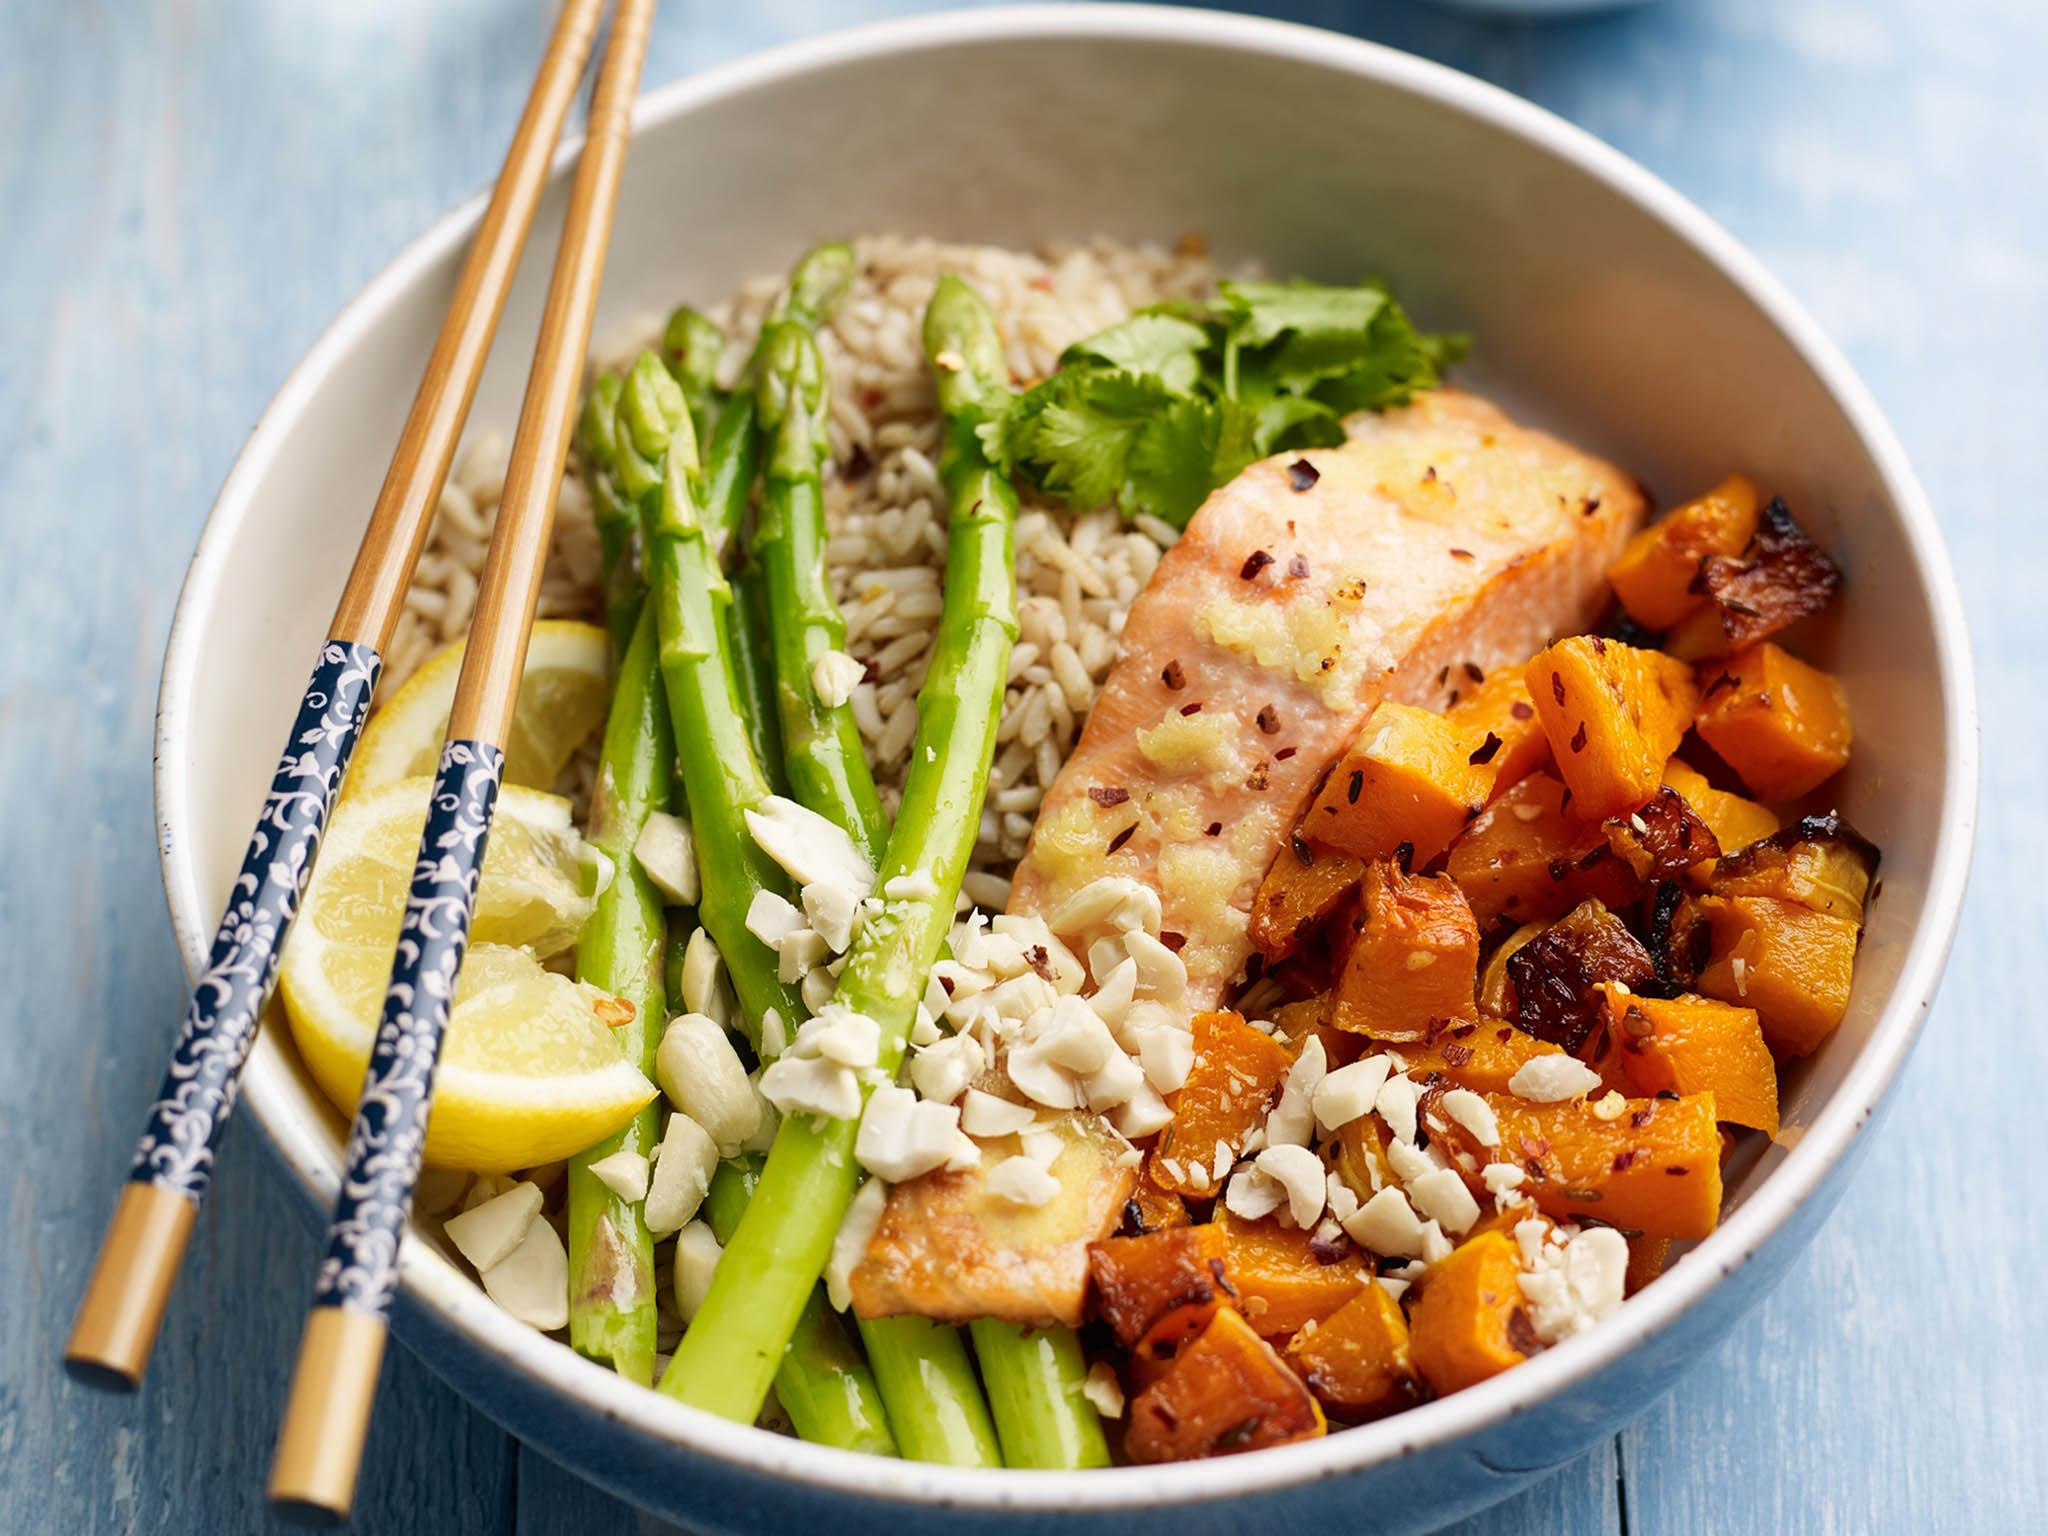 How to make asparagus, salmon and squash rice bowl